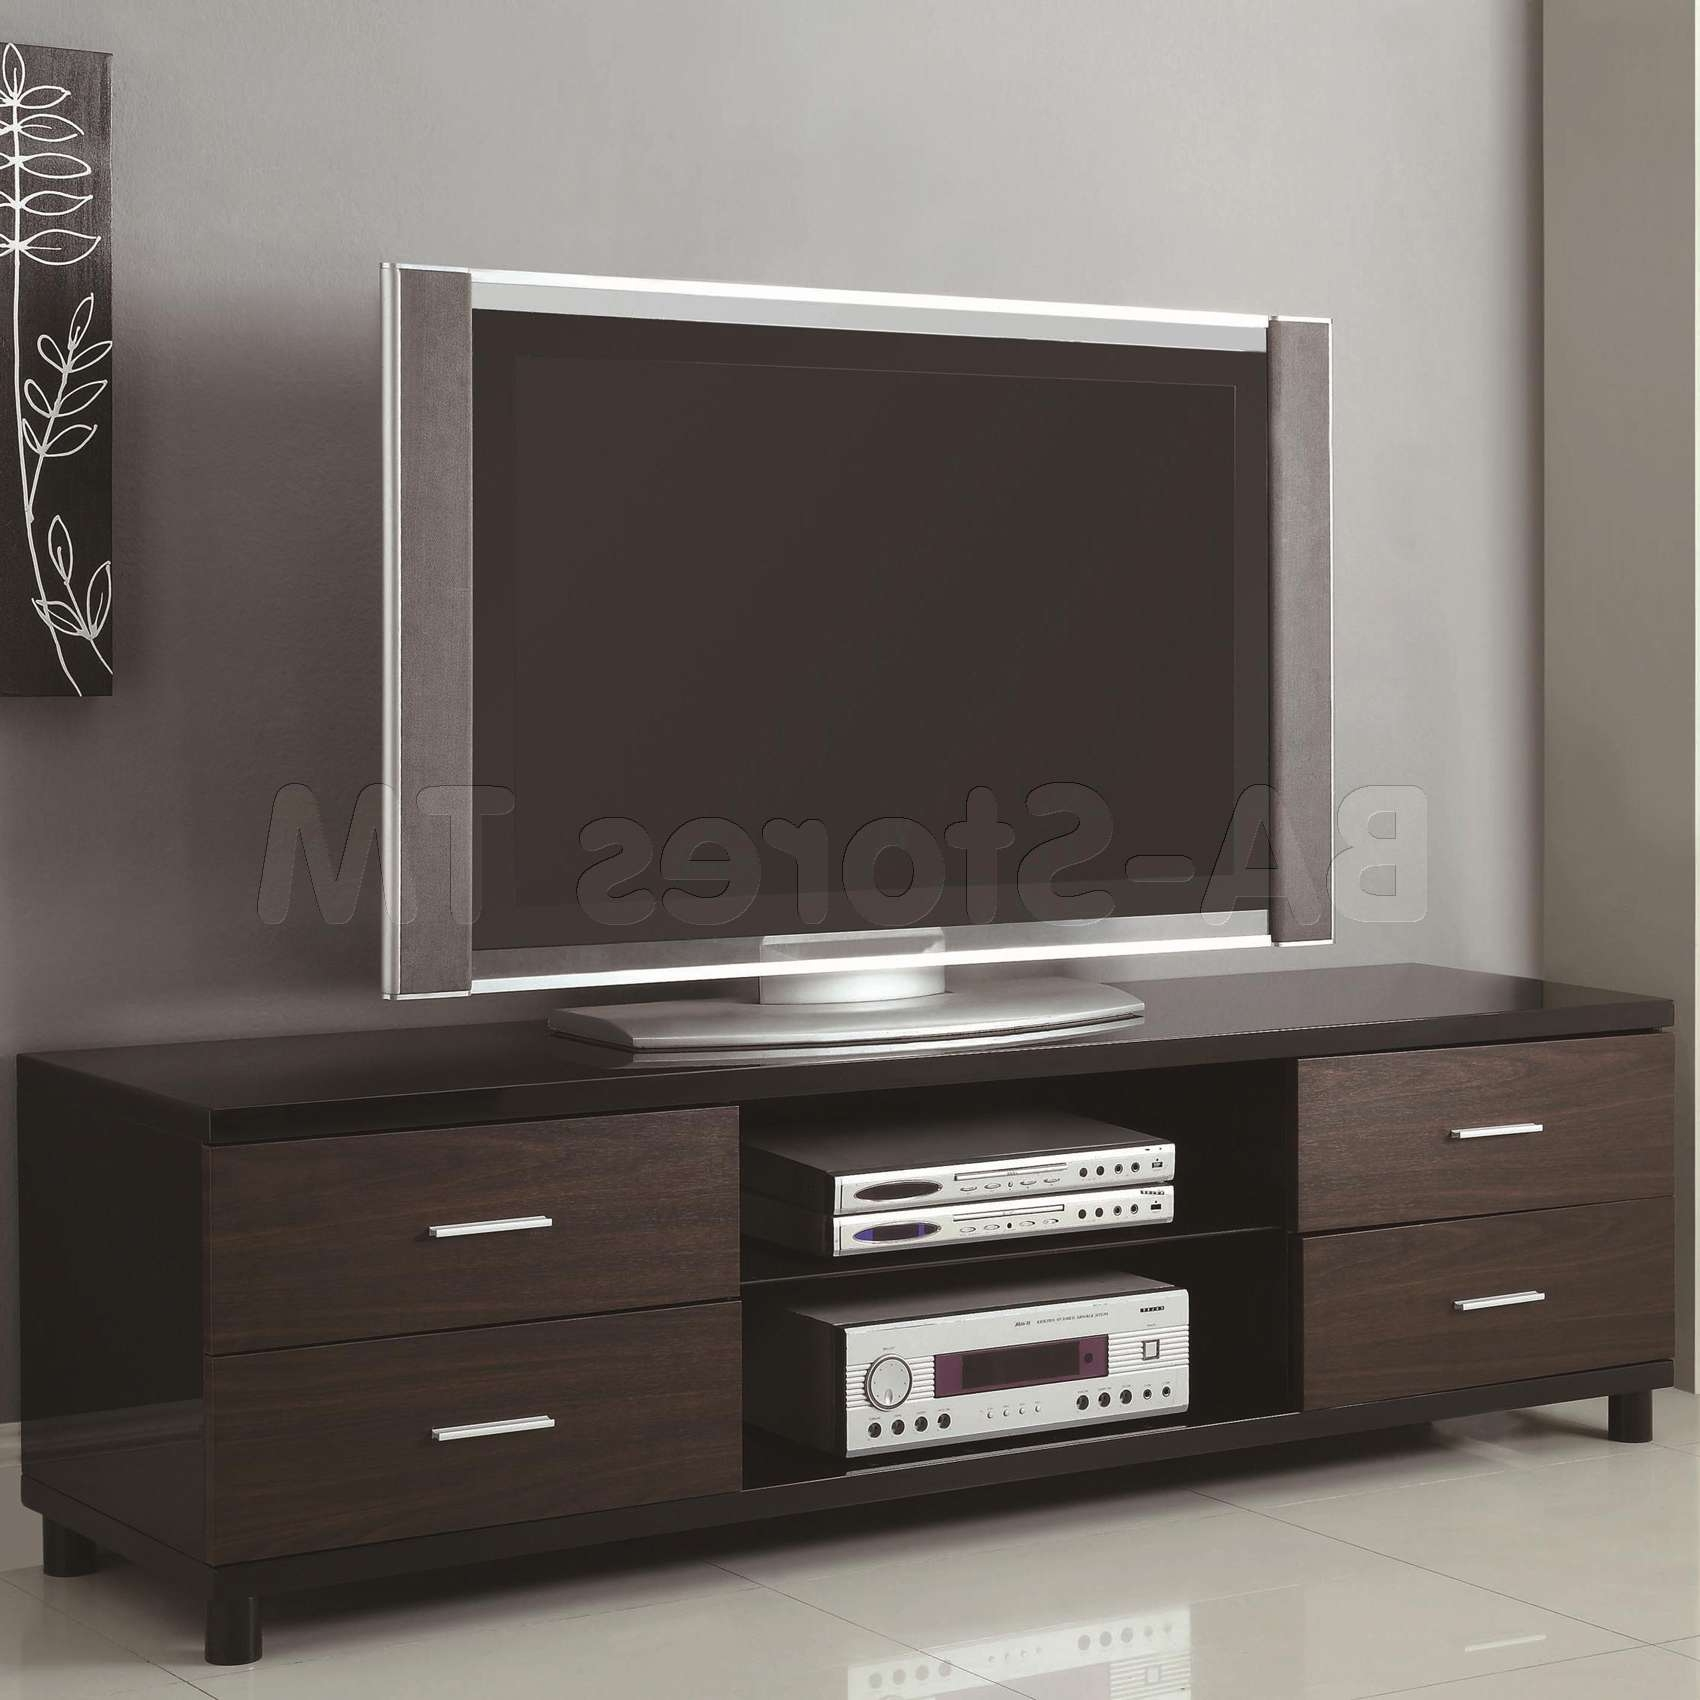 Tv Stand With Drawers And Shelves Throughout Tv Stands With Drawers And Shelves (View 8 of 15)